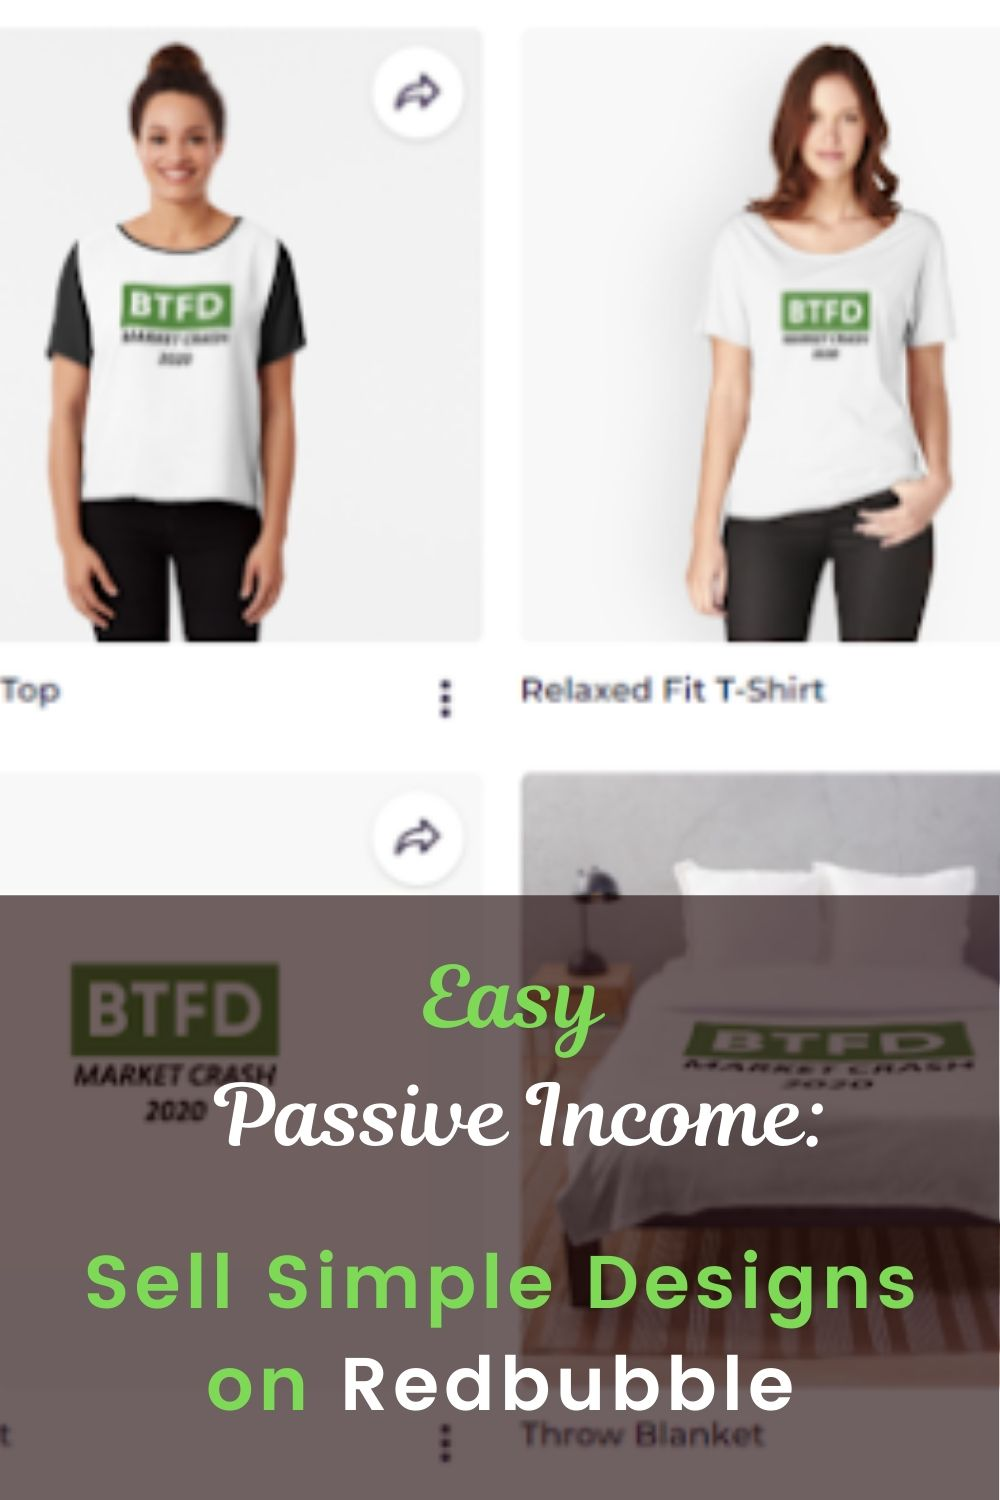 Passive Income: Sell Designs on Redbubble